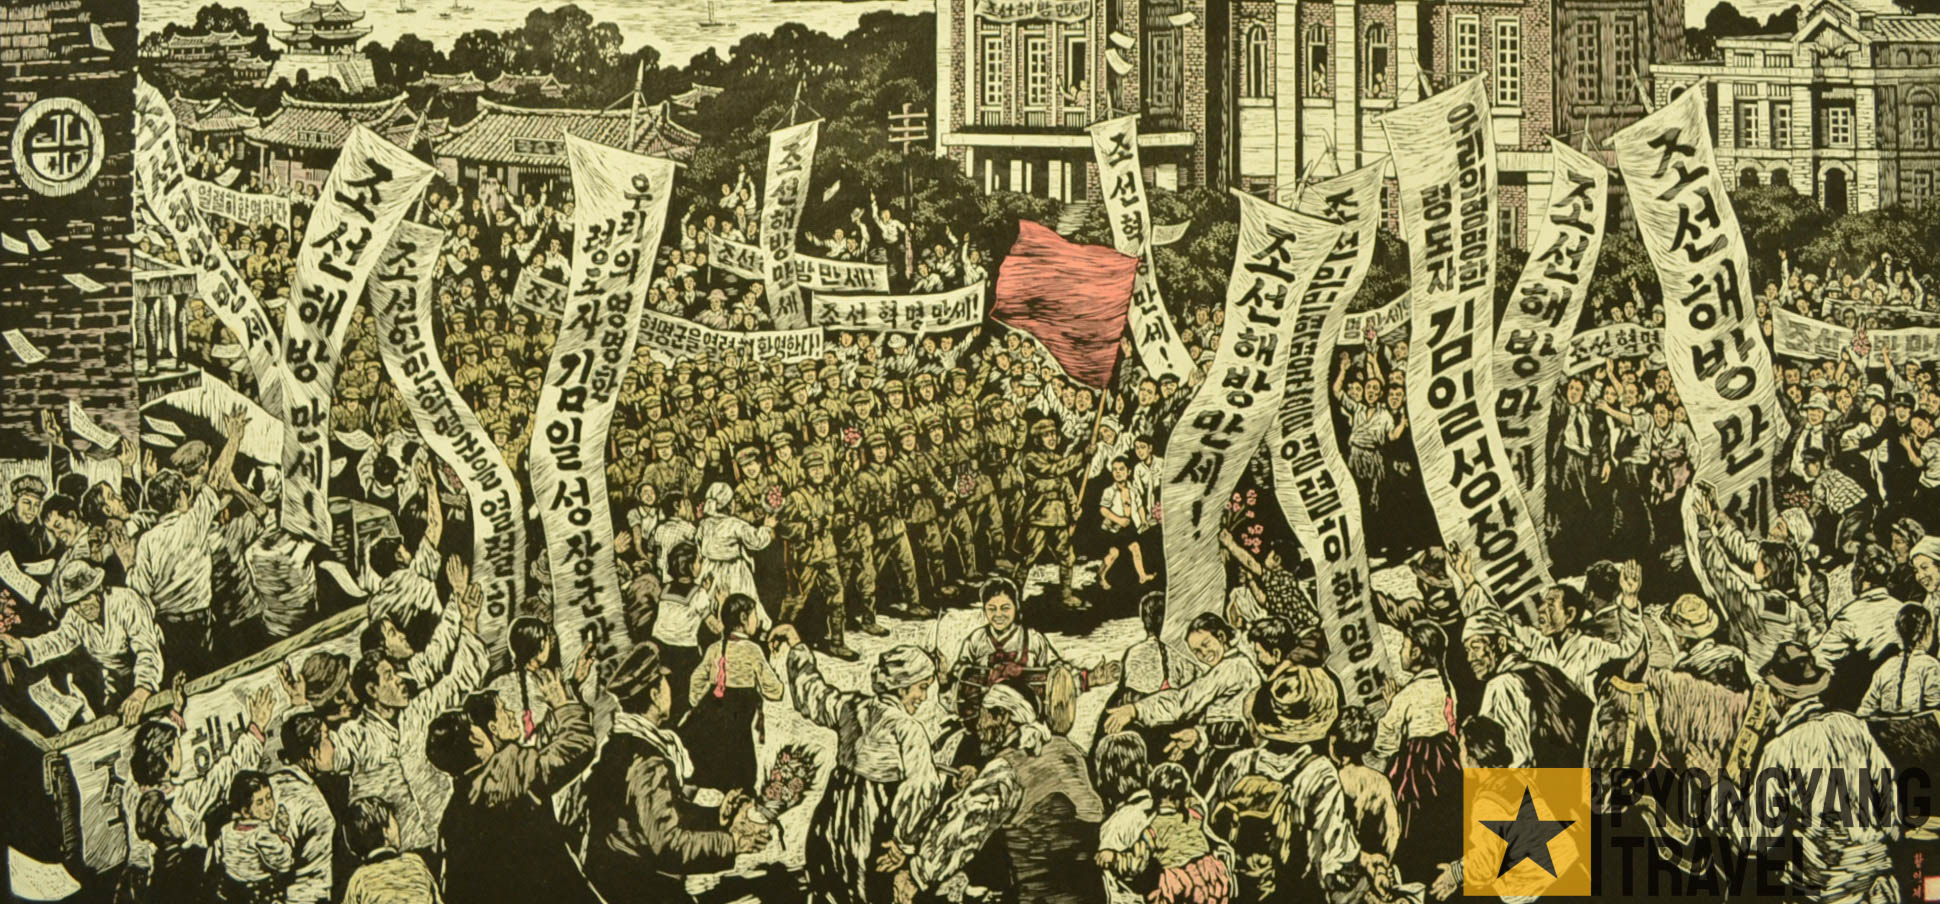 nordkorea-kunstwerk-demonstration